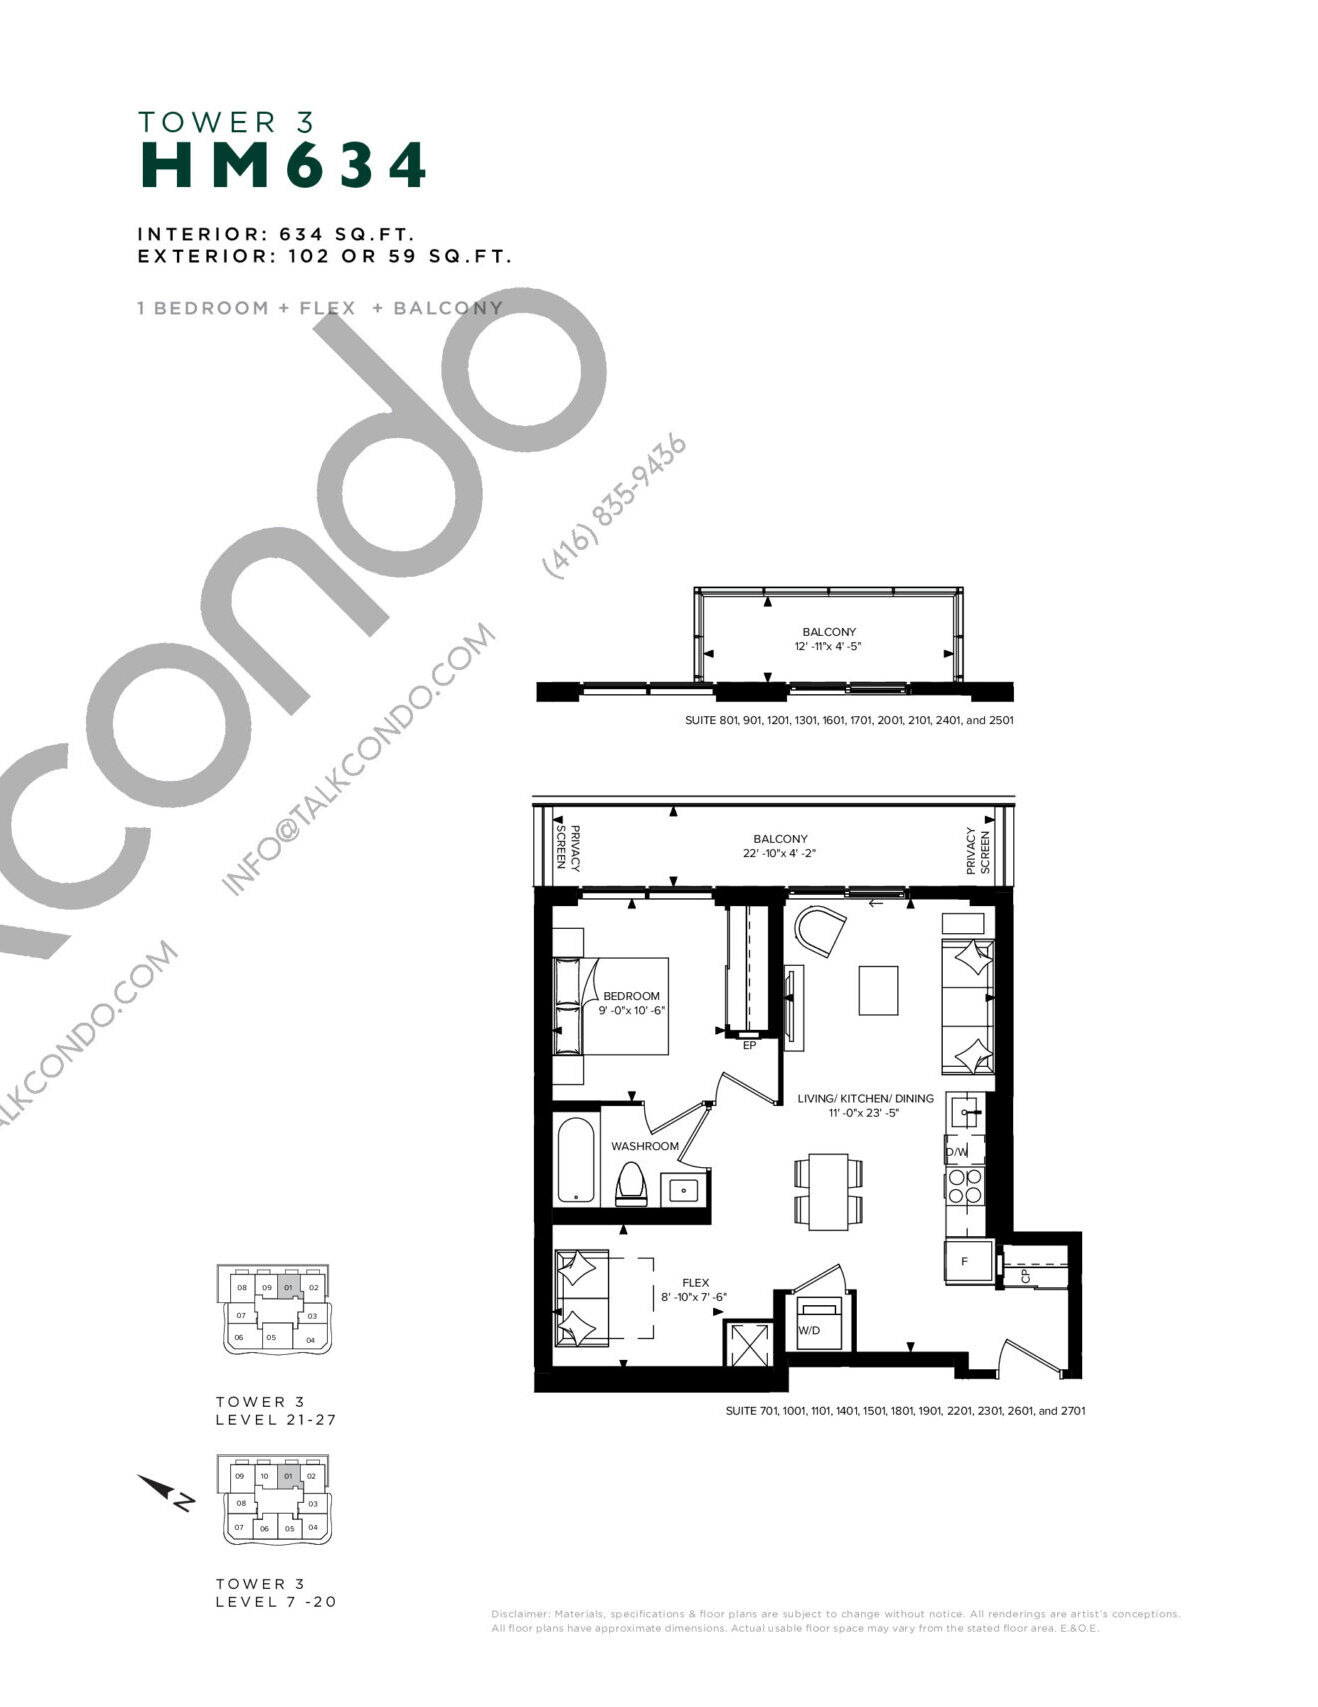 HM 634 (Tower 3) Floor Plan at Hillmont at SXSW Condos - 634 sq.ft